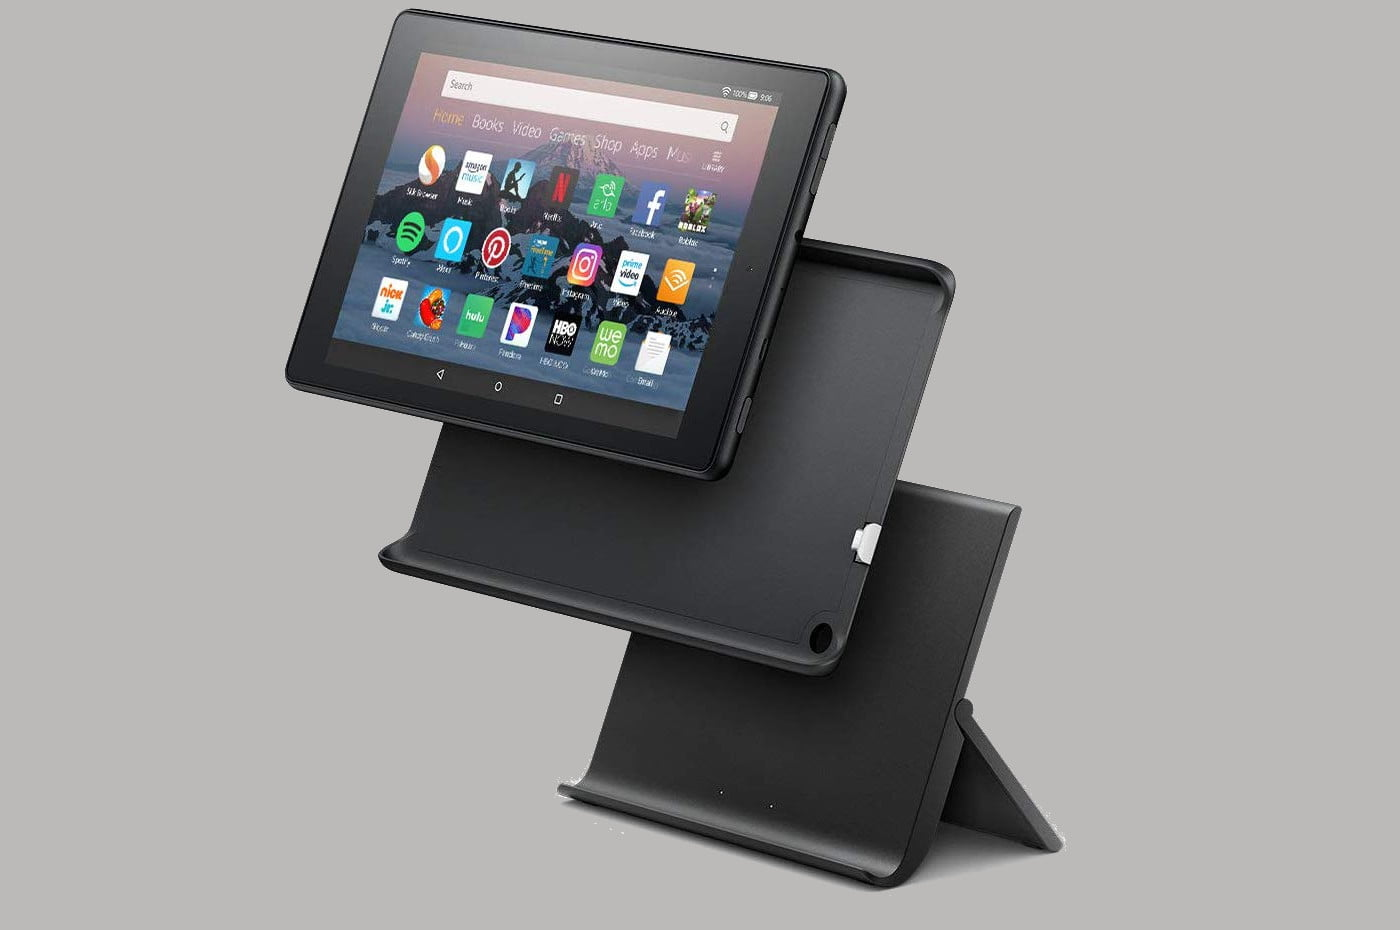 amazon slashes the prices on fire 7 and hd 8 tablets plus kids editions tablet show mode charging dock 4  1